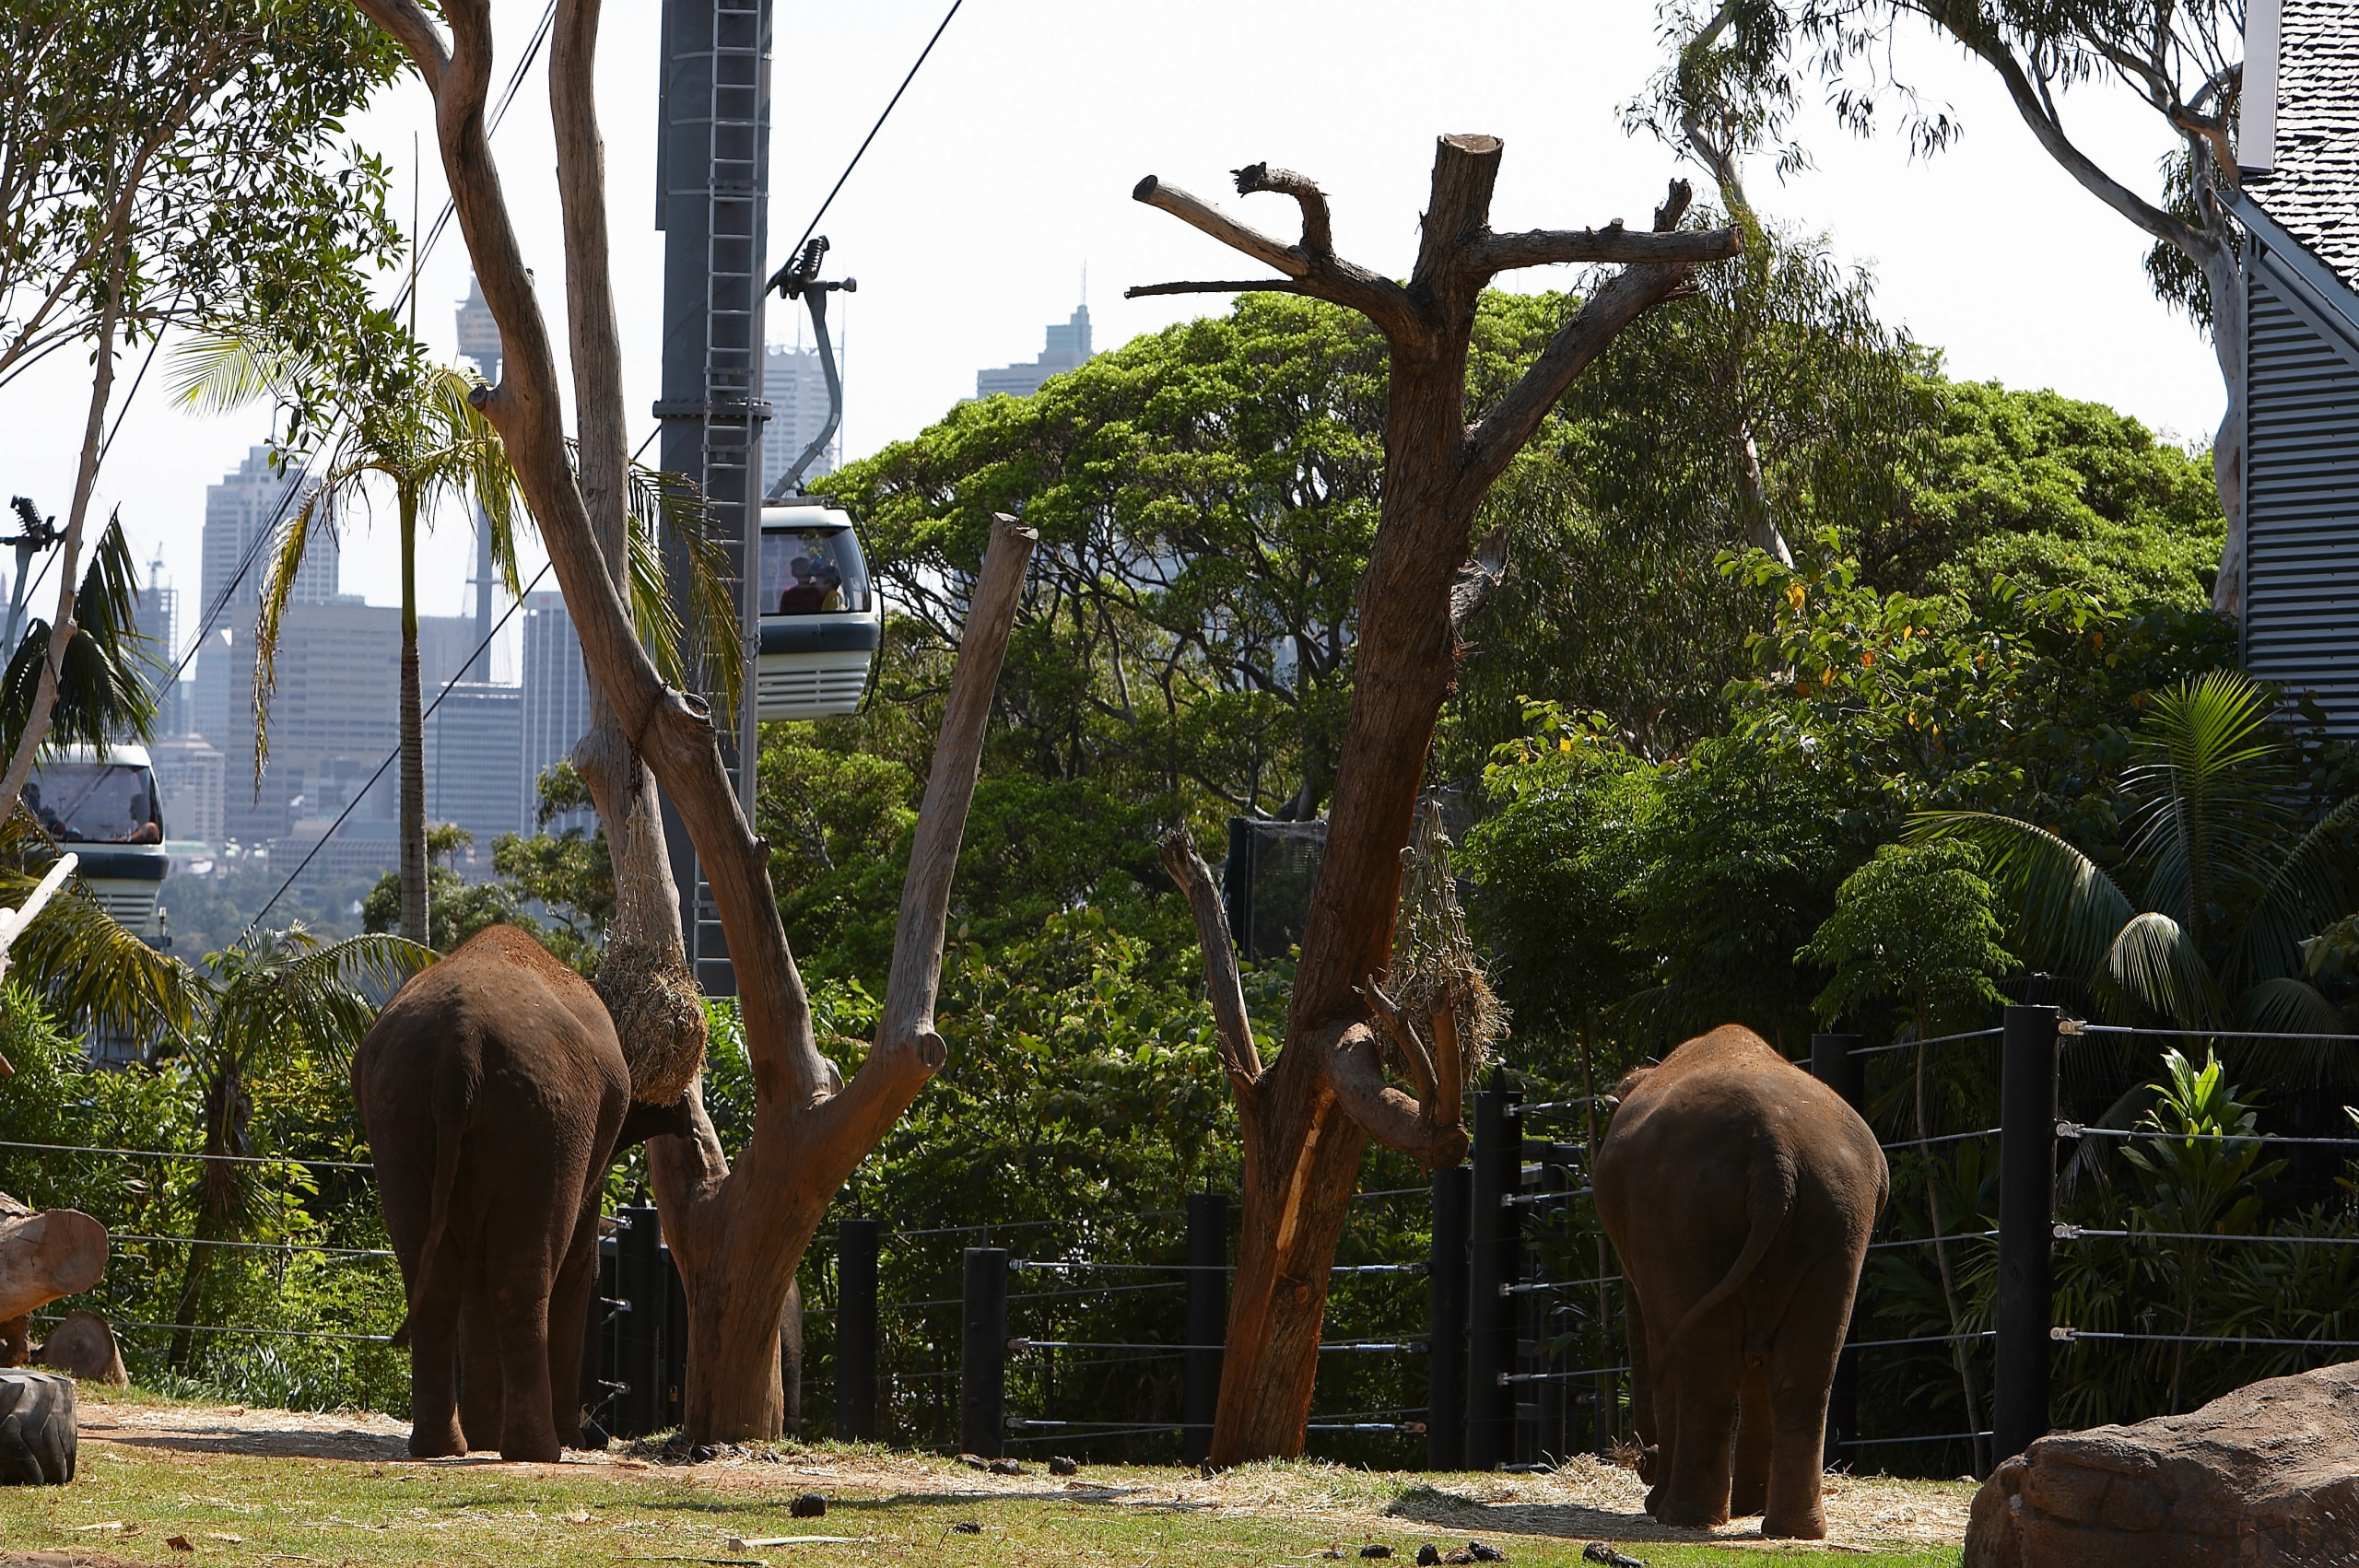 A view of the Asian elephant enclosure featuriing elephants and mammoths, mammal, plant, recreation, sculpture, tree, zoo, brown, black